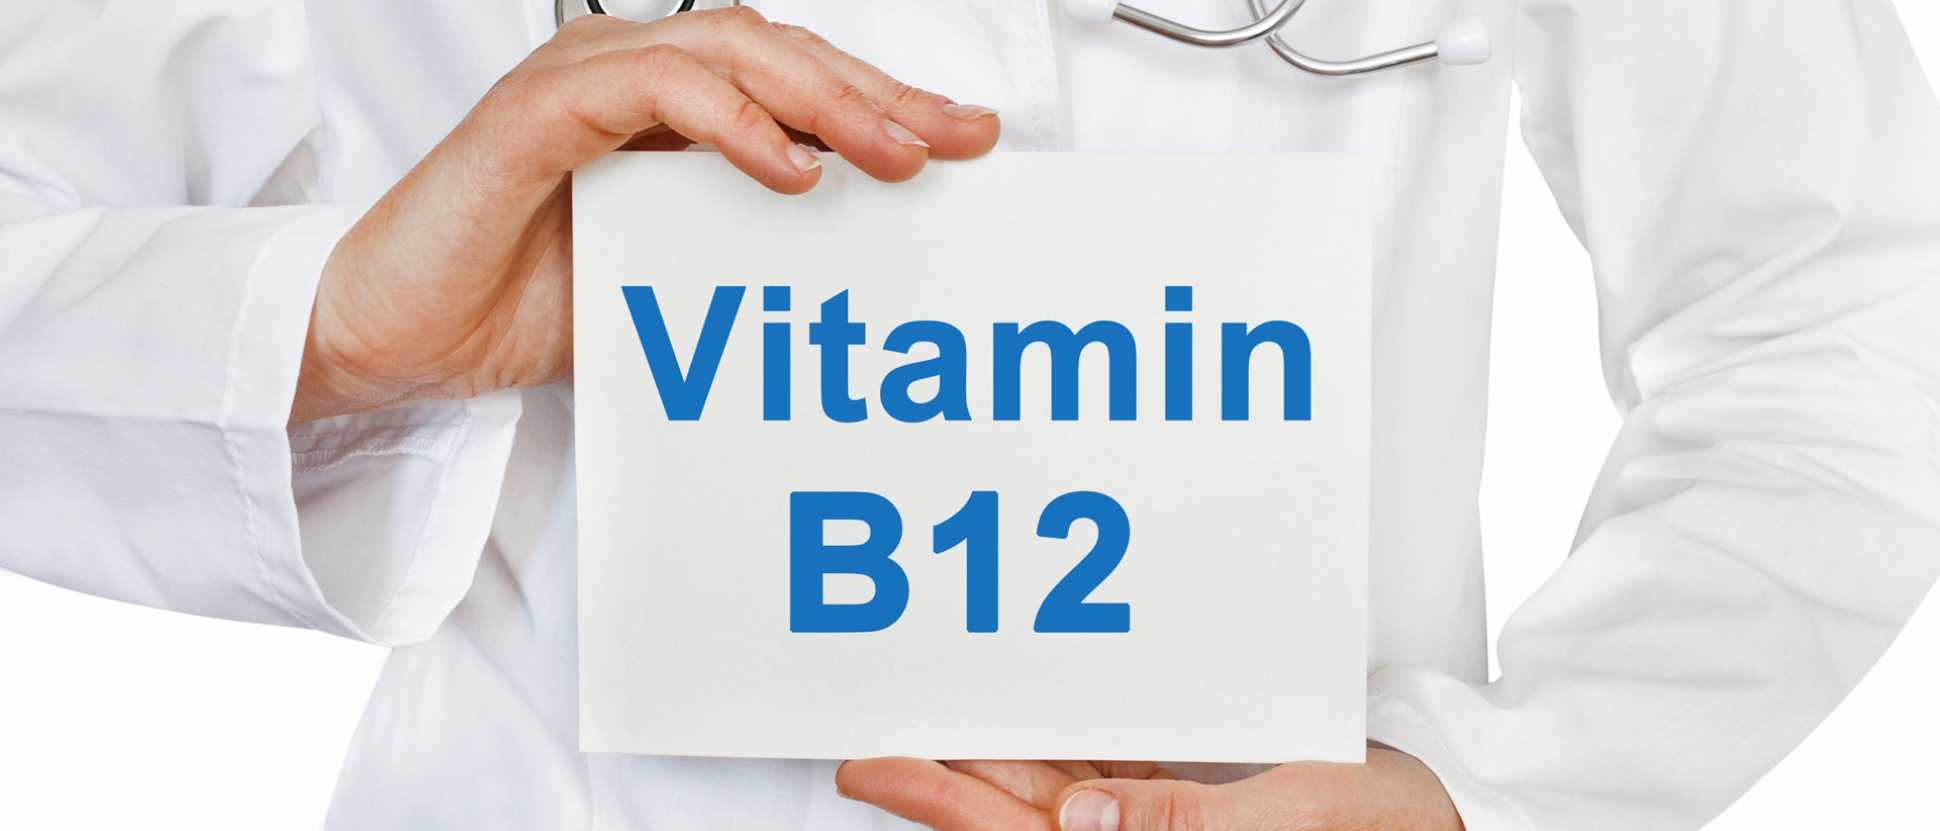 160714-Low-serum-vitamin-B12-levels-common-in-older-adults-with-normal-nutritional-assessmentjpg